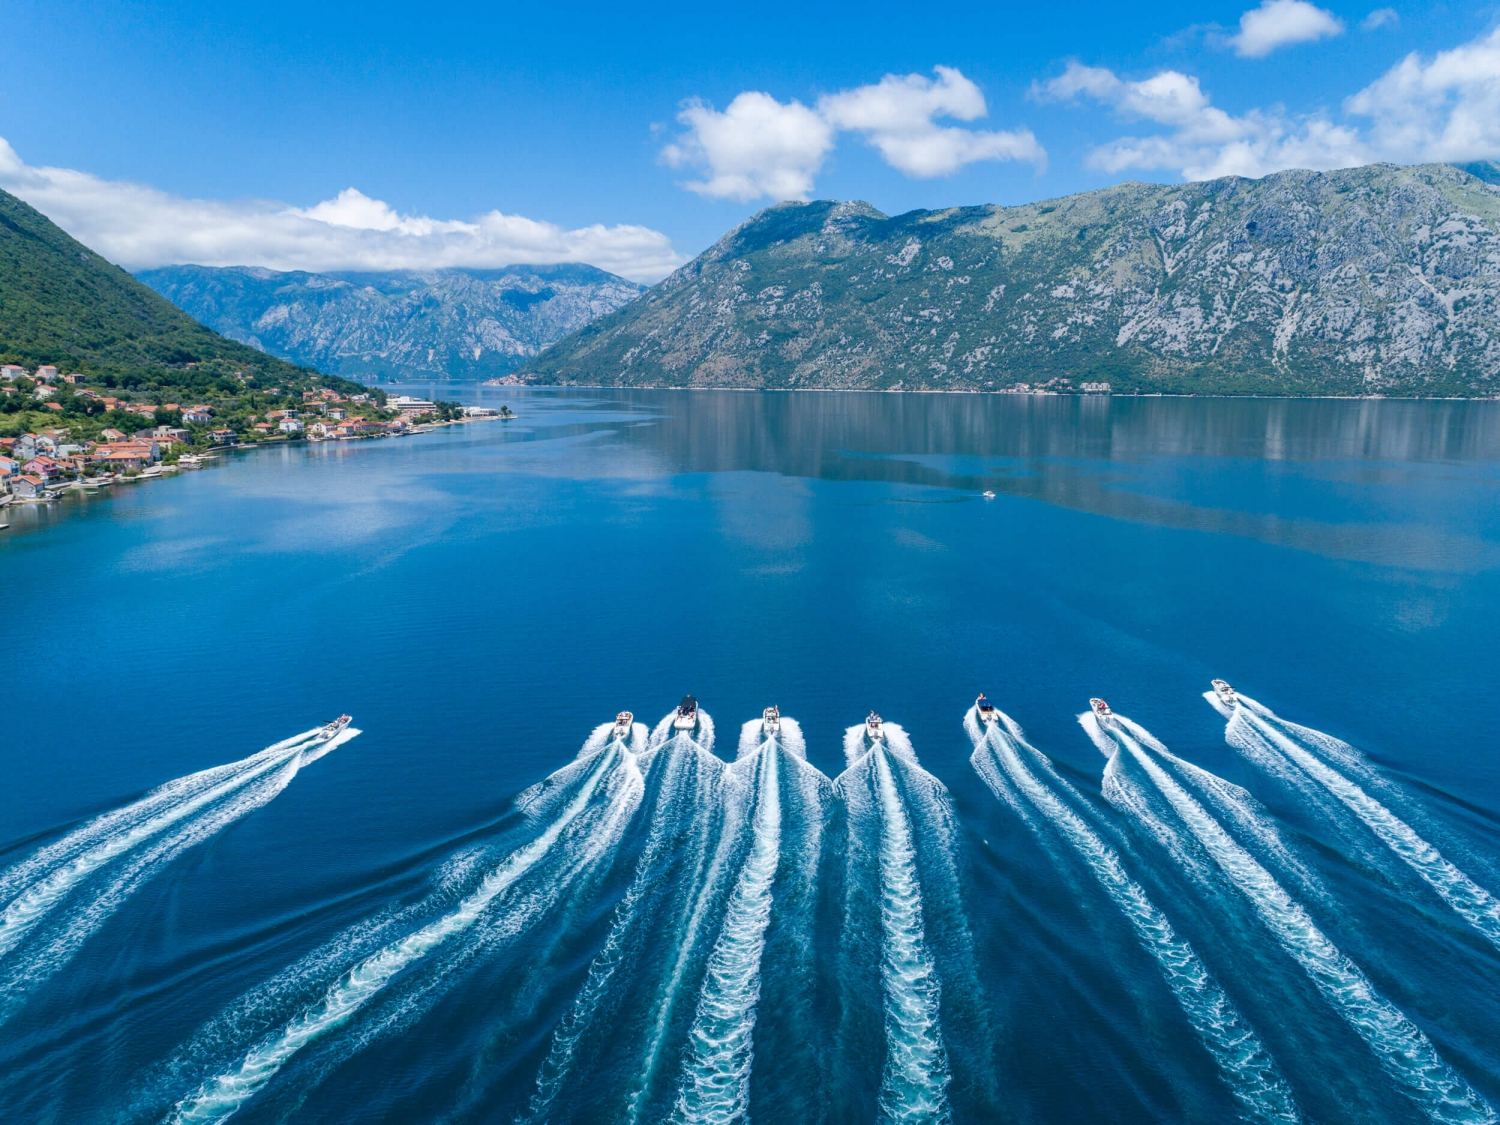 Special Tours: Bay of Kotor Blue Cave Adventure